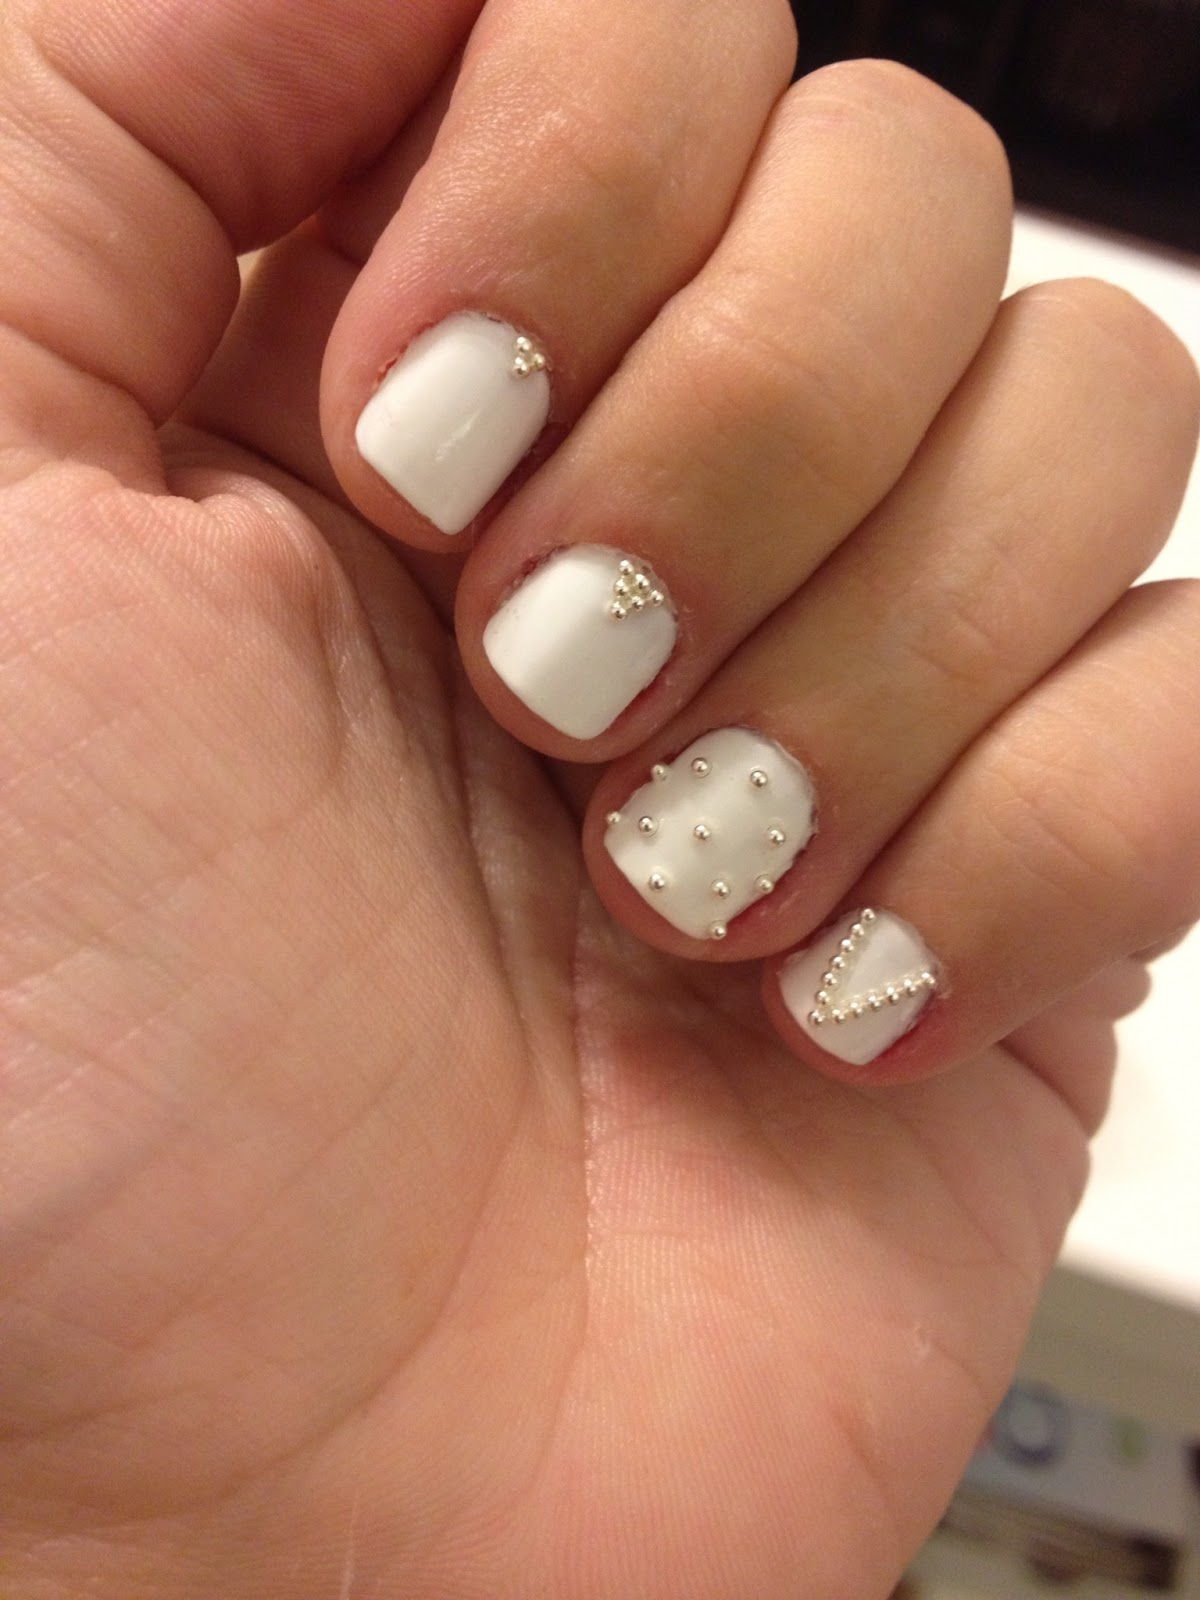 The Makeup Masochist: Nails of the Week: Hot Haute White